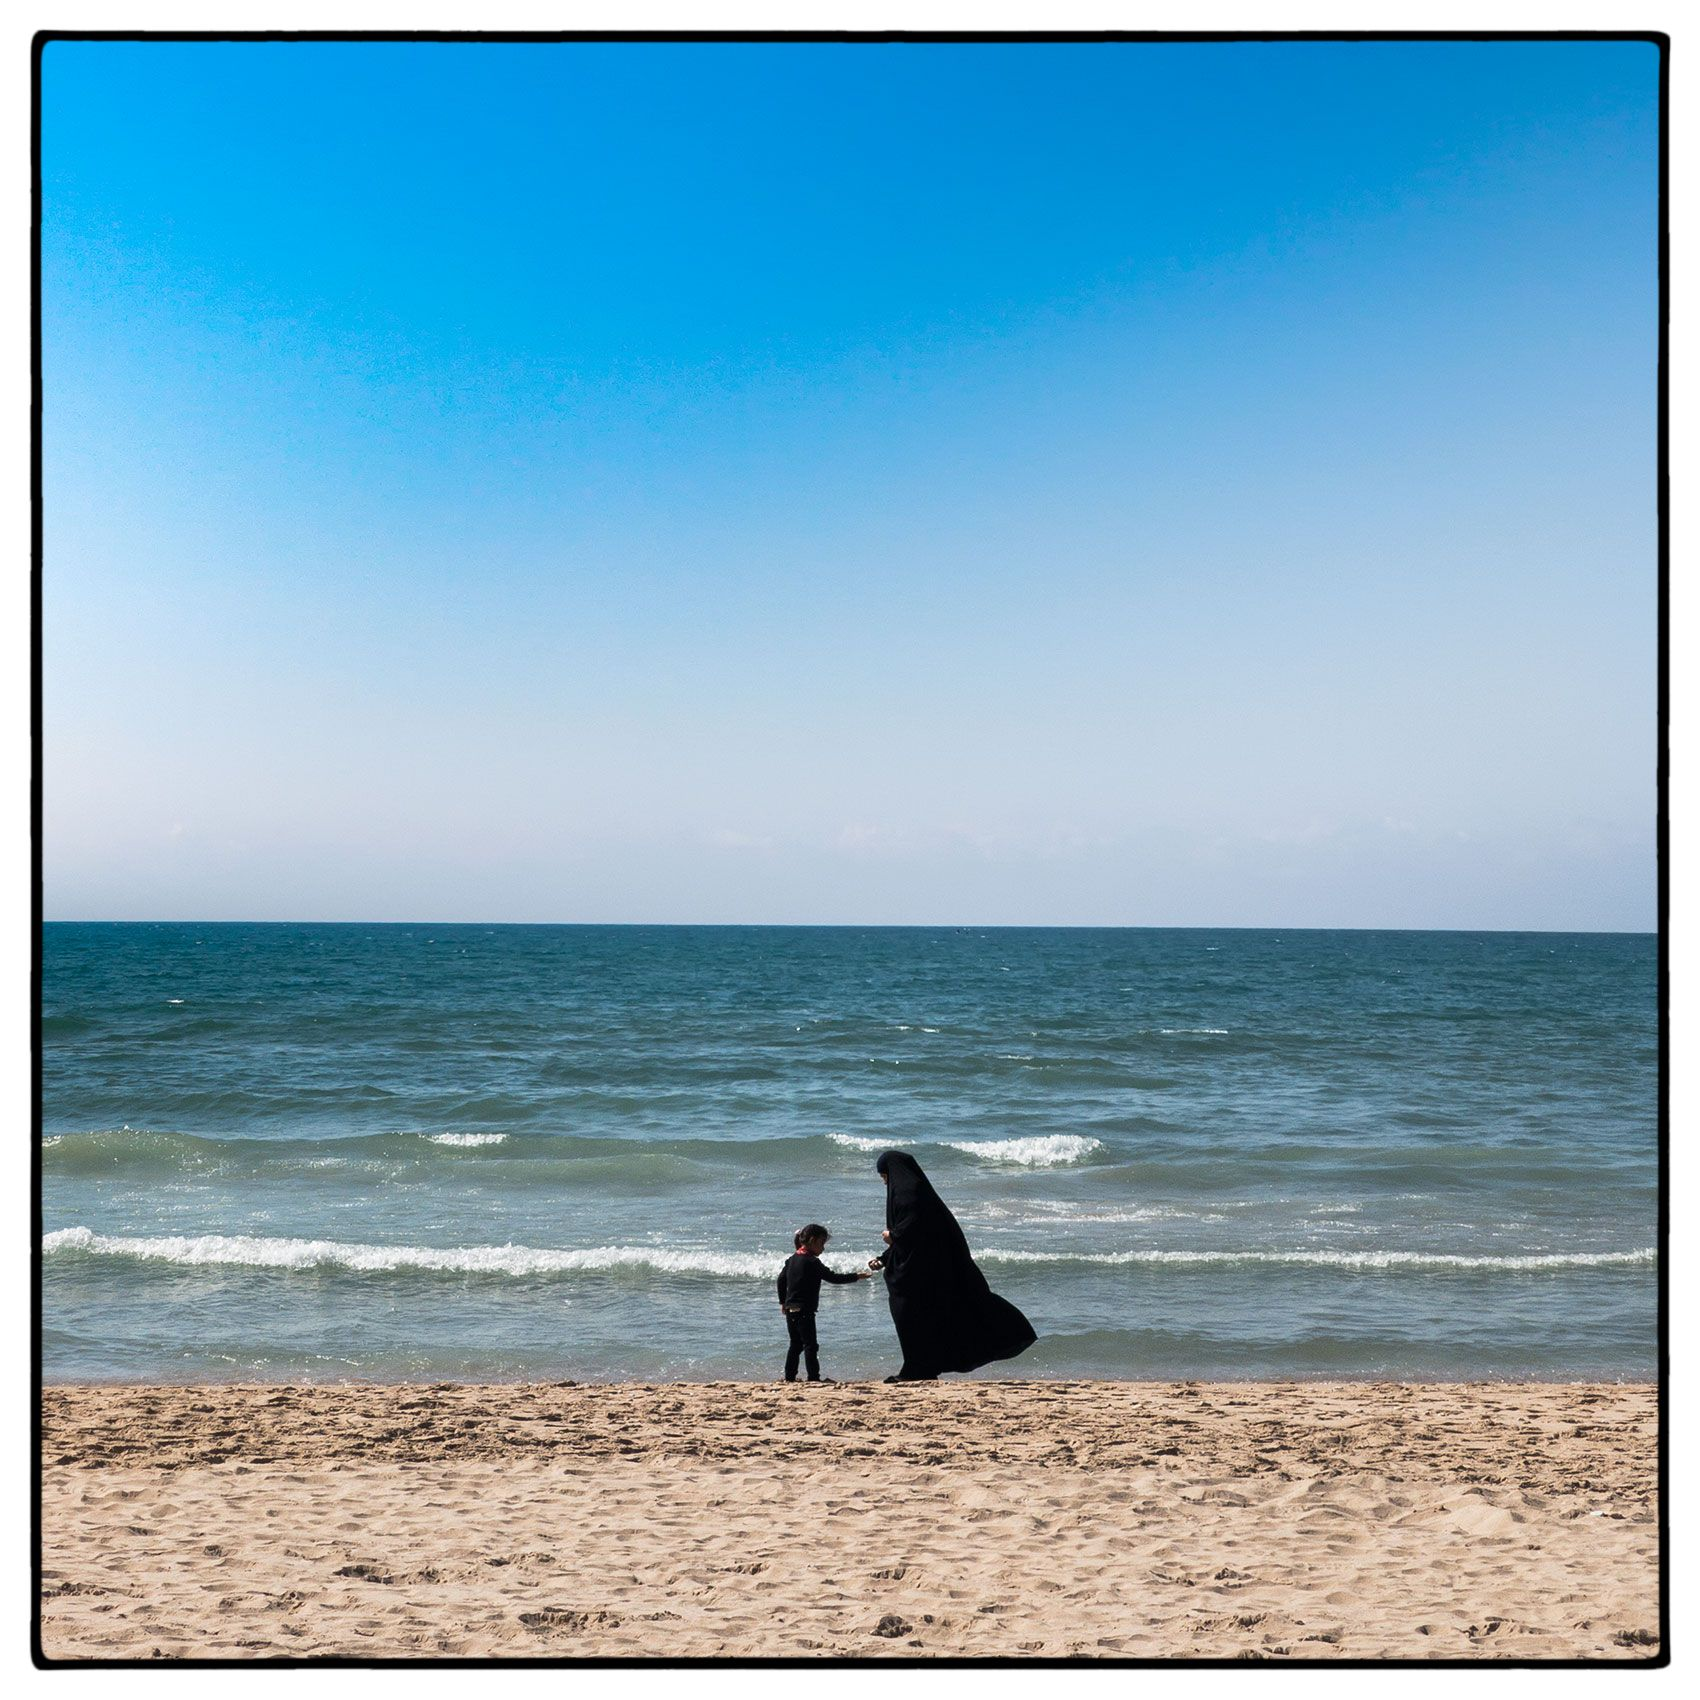 a-muslim-woman-in-a-burqa--with-her-daughter-on-the-beach-in-beirut-lebanon